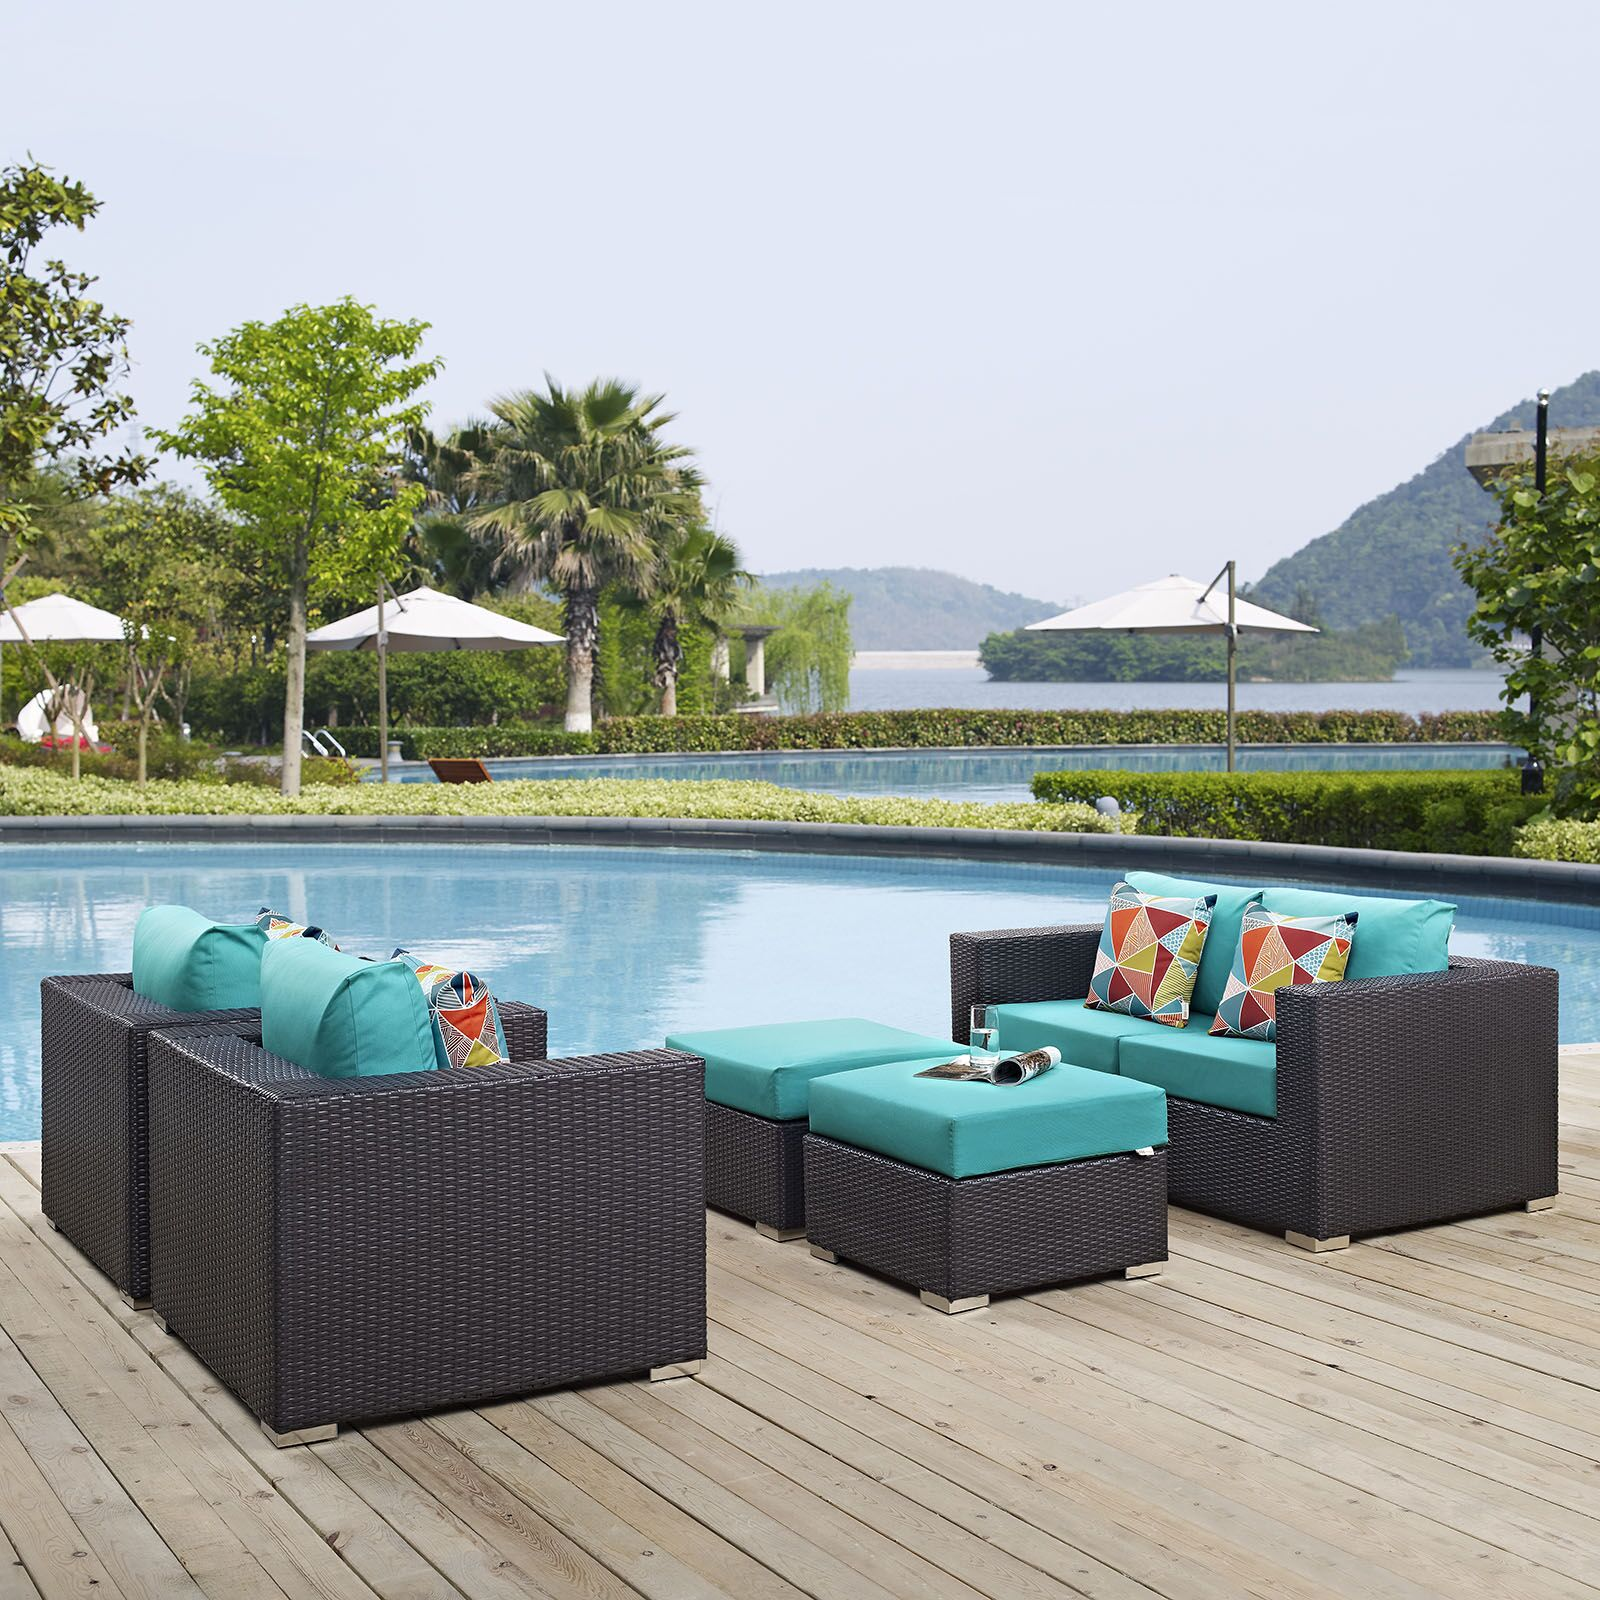 Ryele 5 Piece Rattan Sectional Set with Cushions Fabric: Turquoise